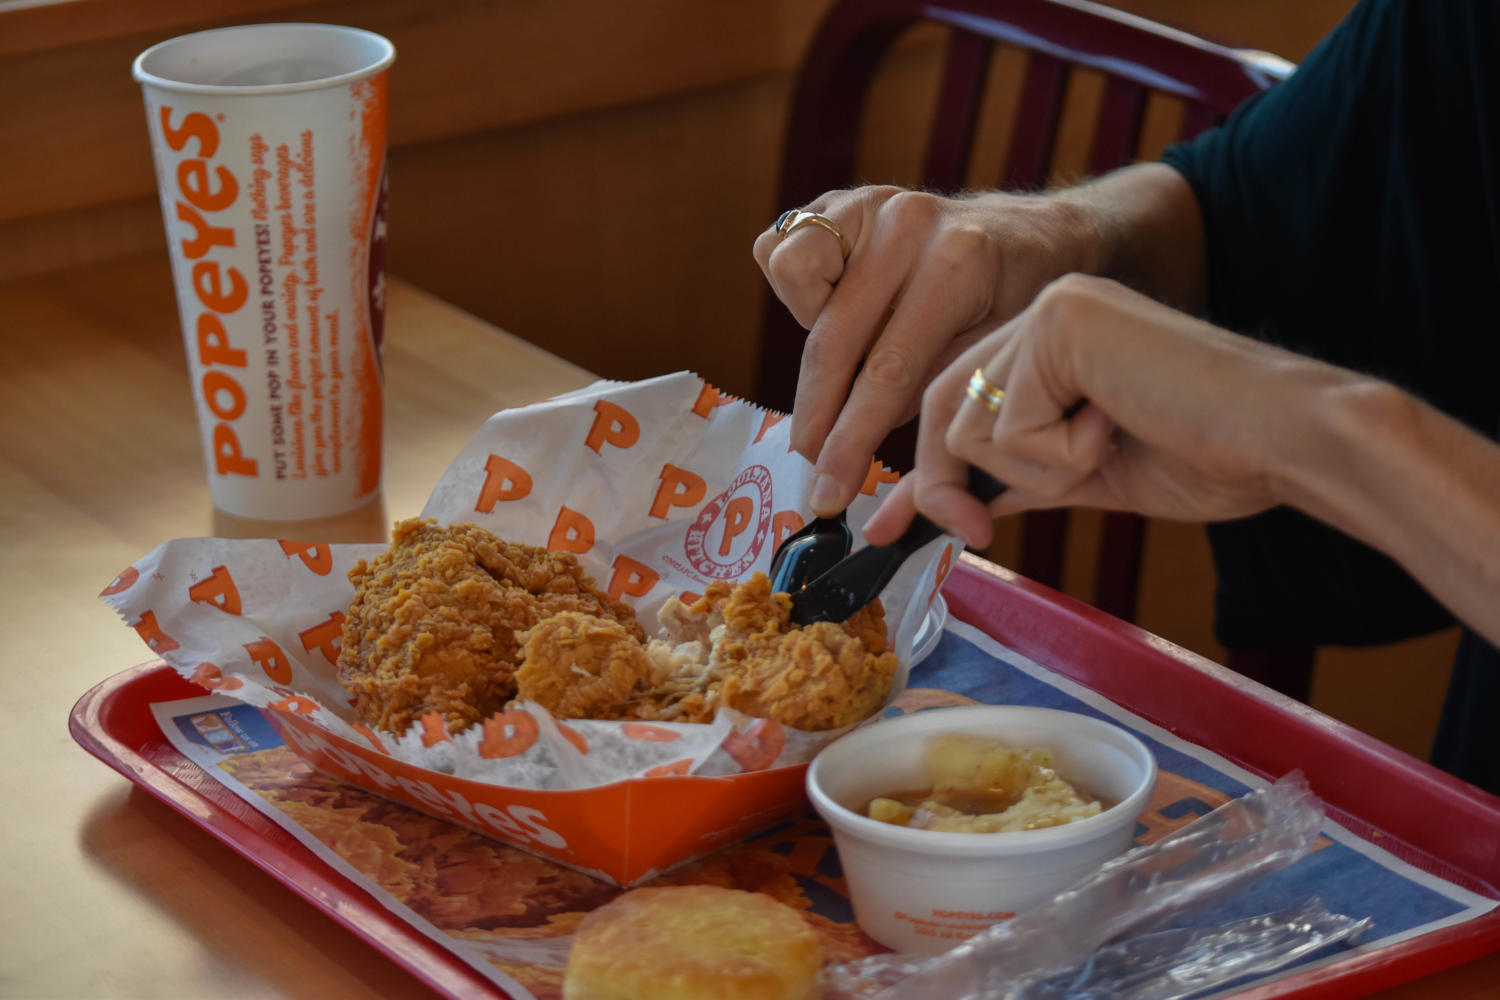 A woman cuts into her chicken at Popeyes Louisiana Kitchen.